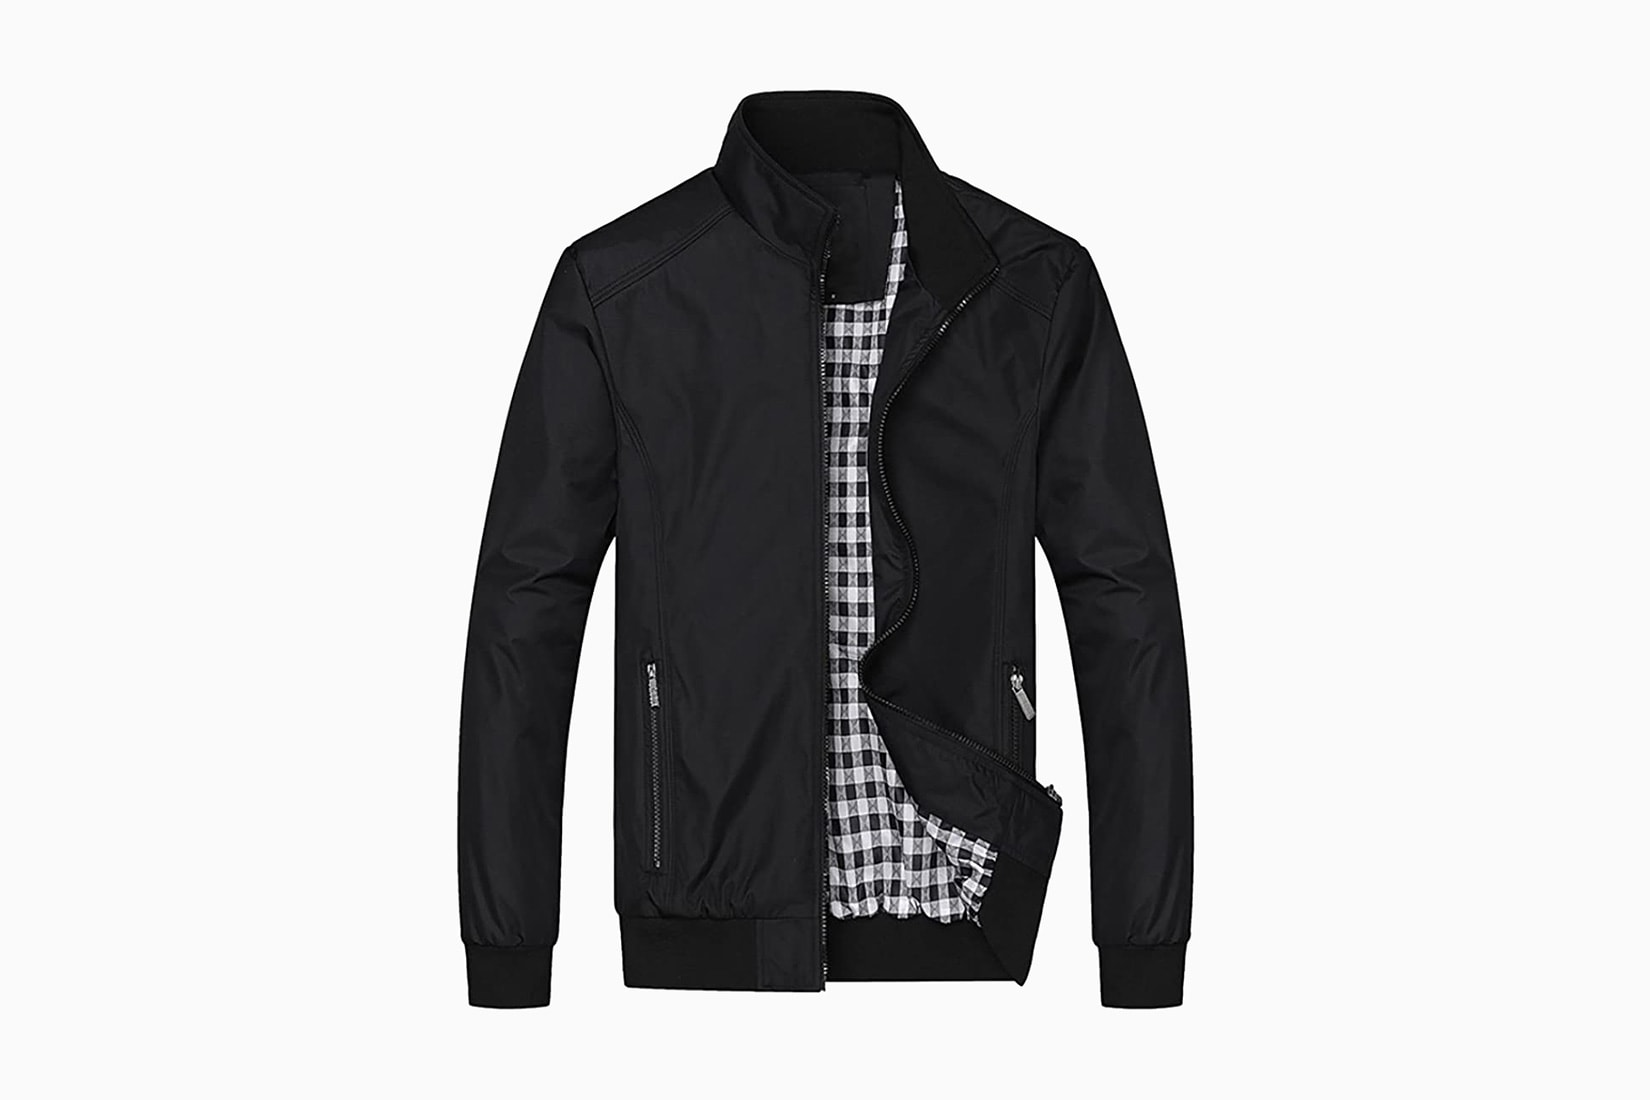 best men bomber jacket black Nantersan review - Luxe Digital